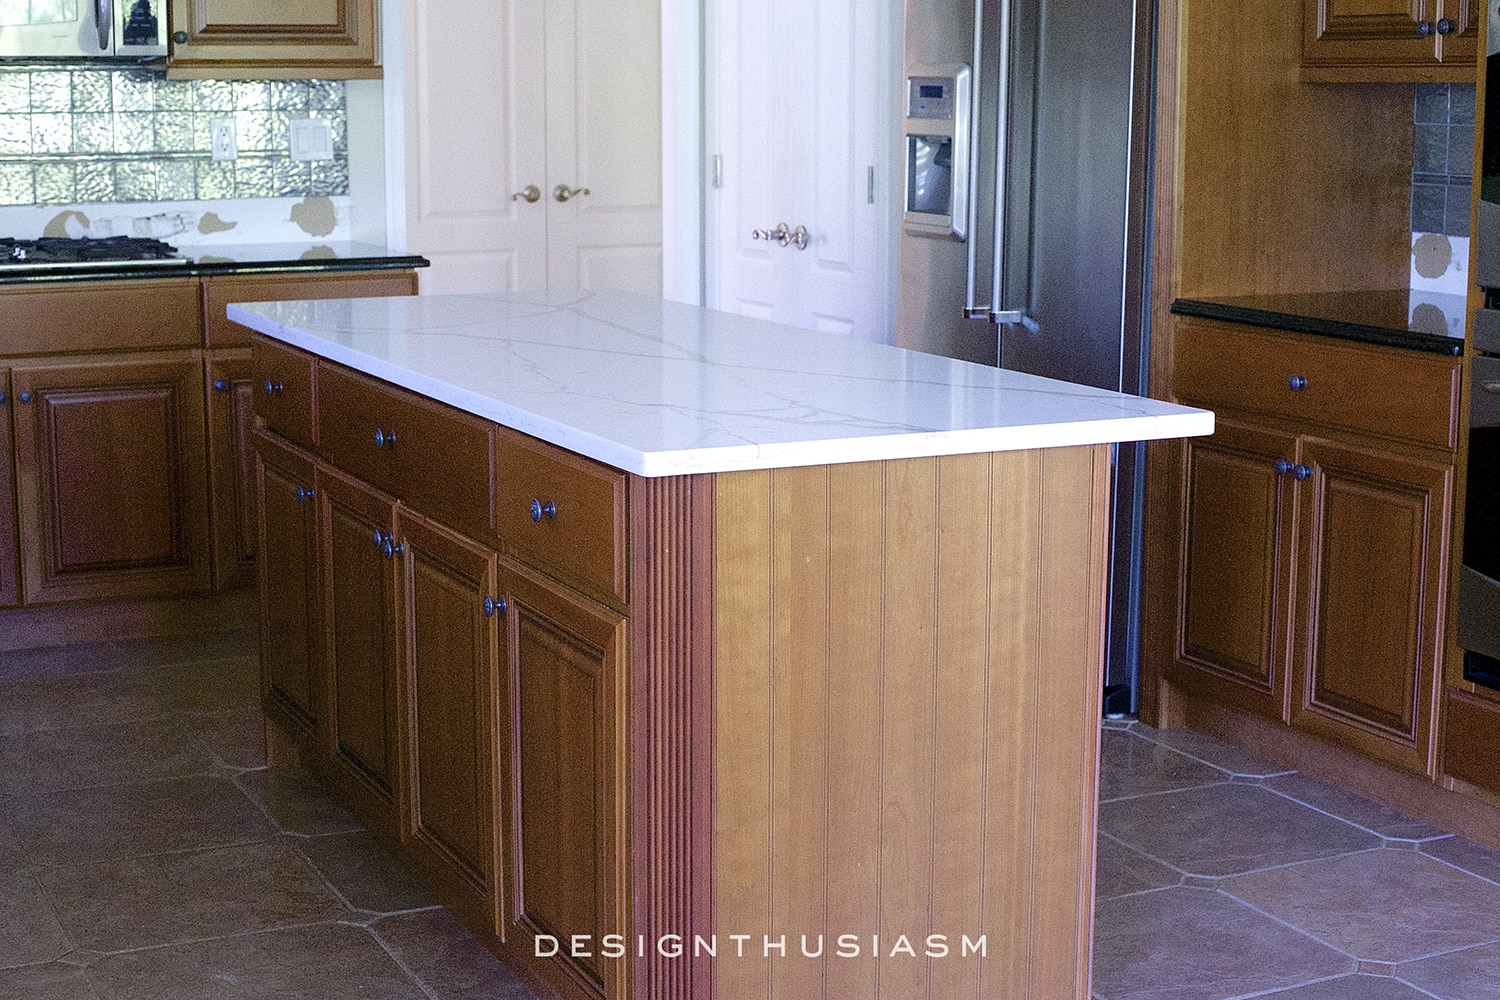 Replacing the Kitchen Counter for a Dramatic Impact | Designthusiasm.com